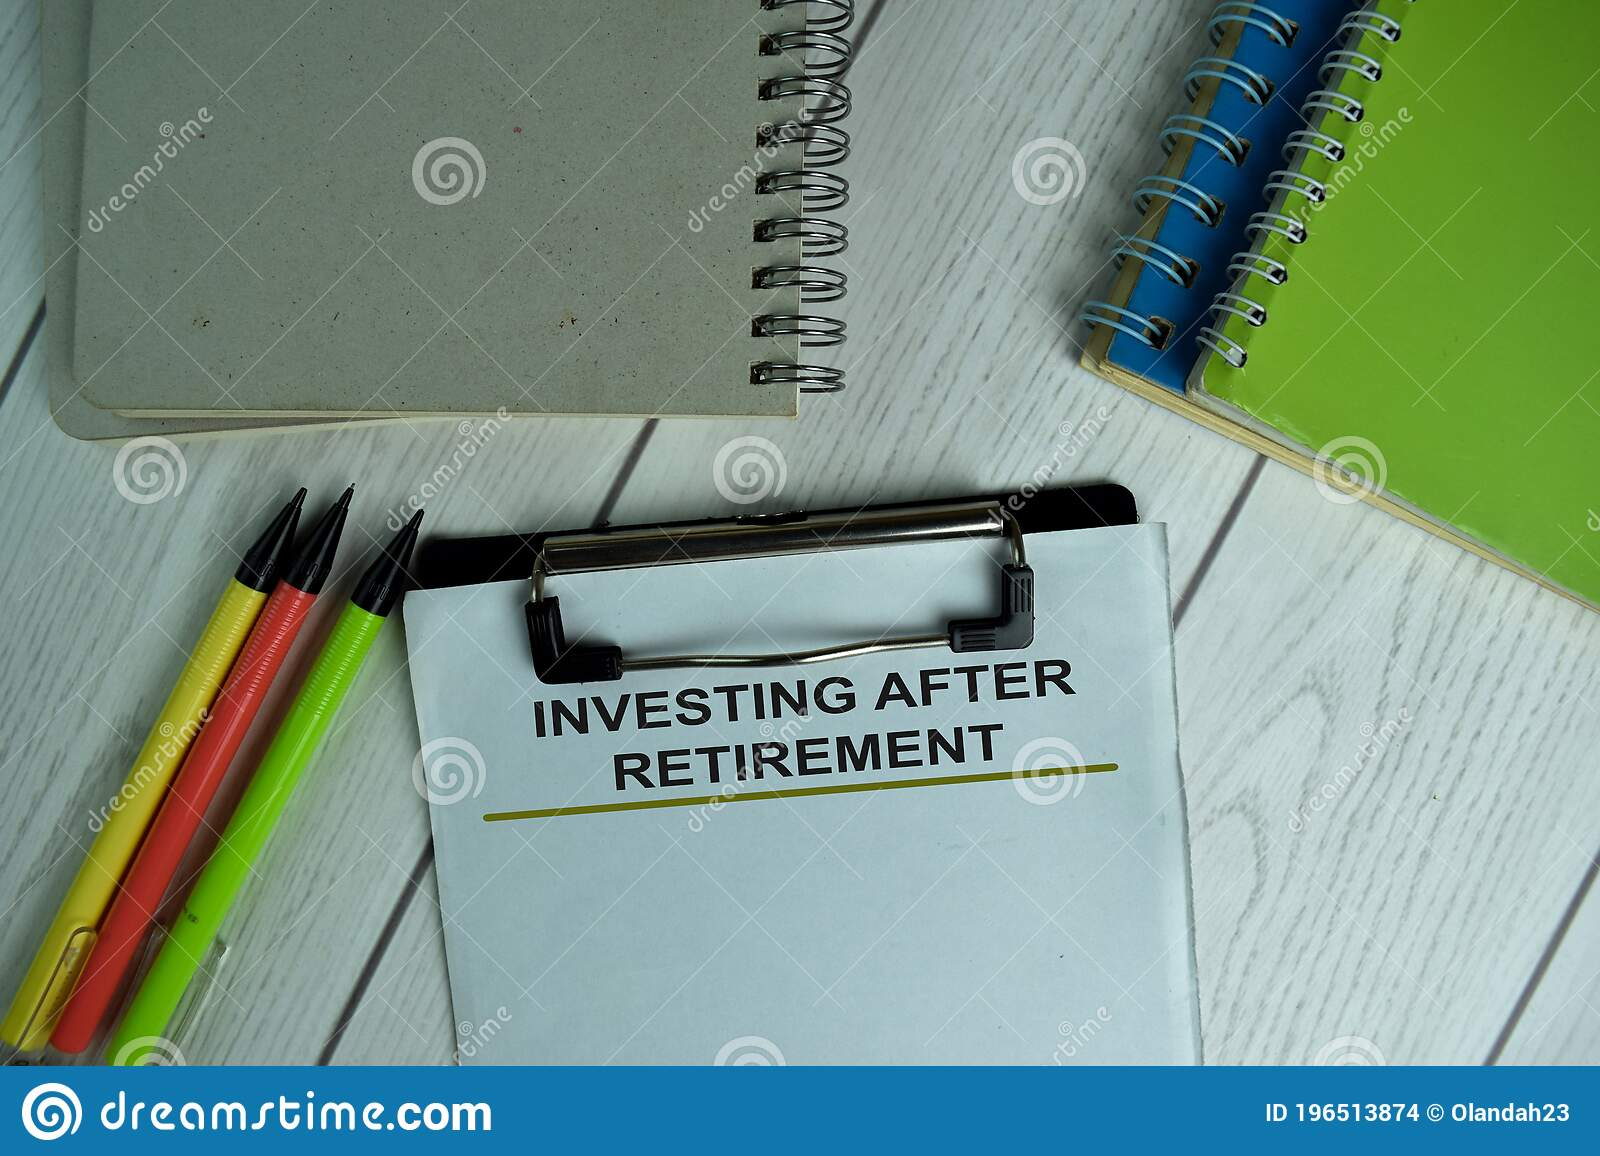 Investing After Retirement Write On A Paperwork Isolated On Wooden Table Stock Photo Image Of Bank Elderly 196513874